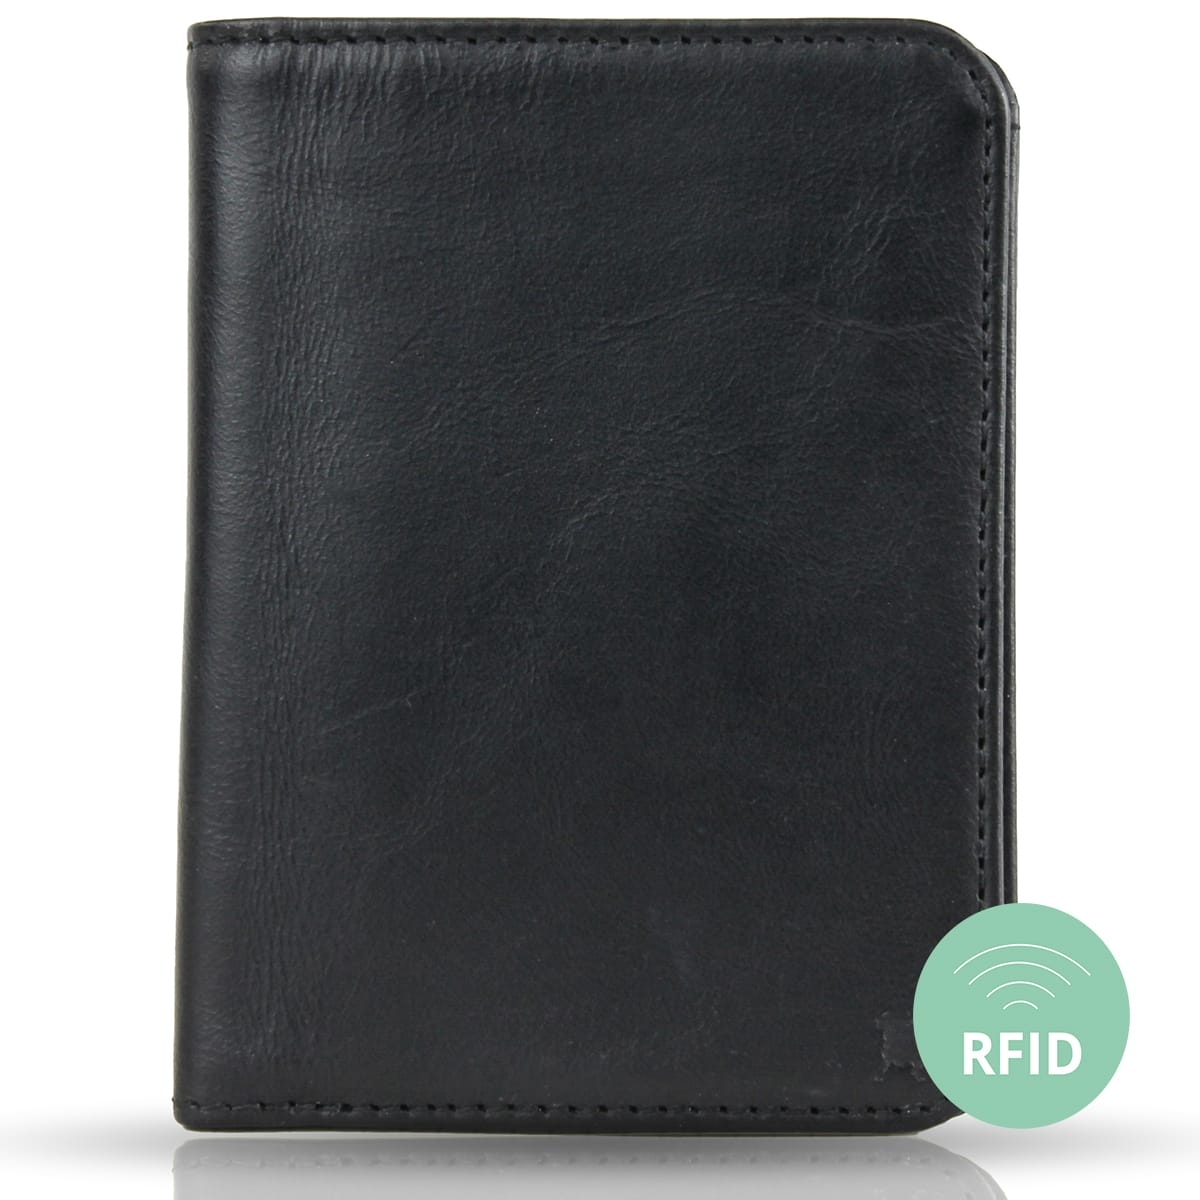 SLIM Wallet for Men with RFID Protection